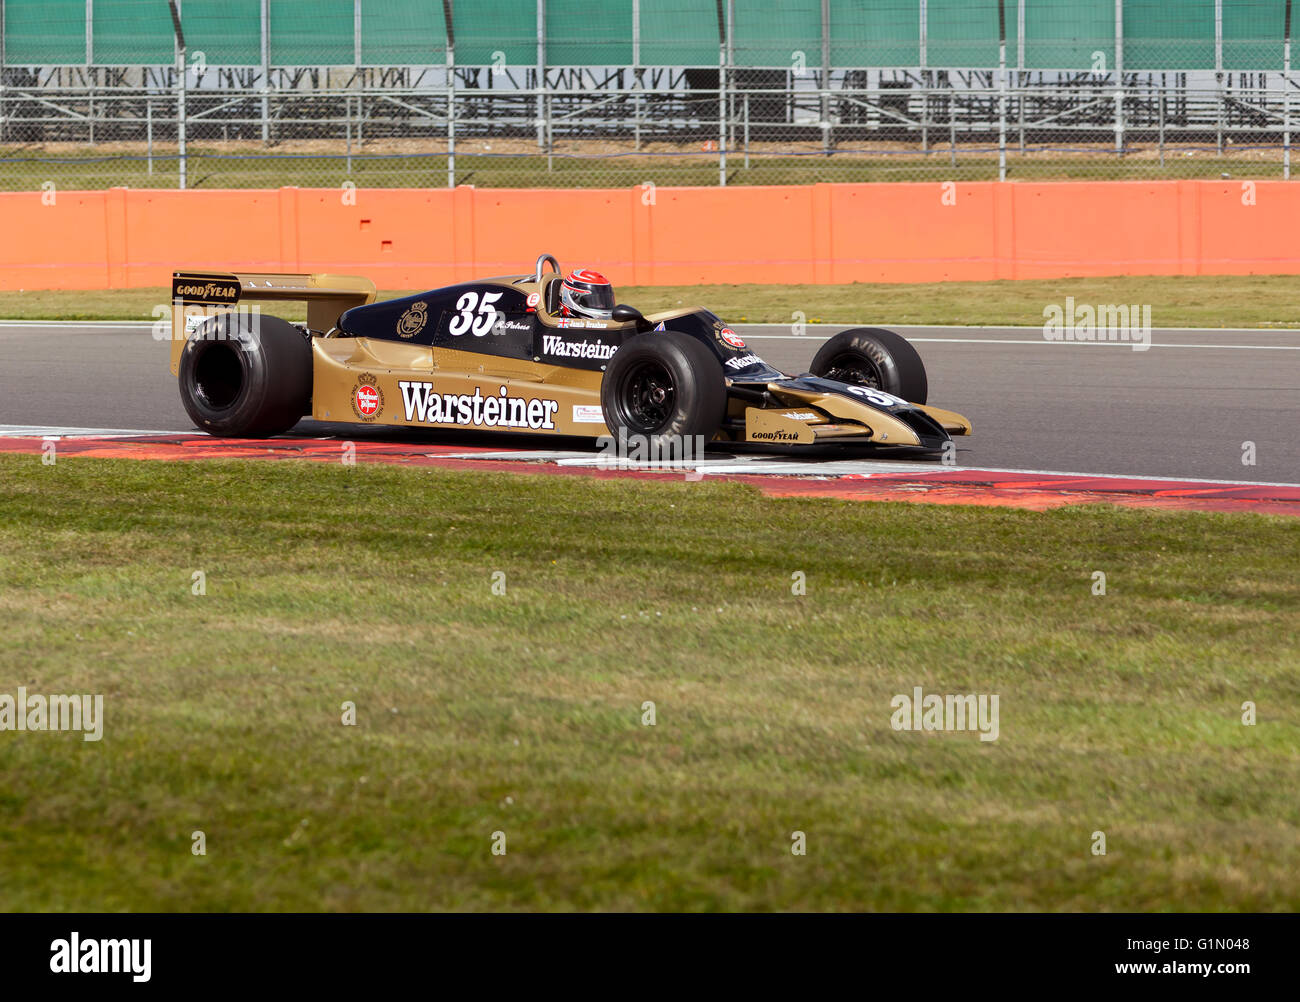 Jamie Brashaw, driving an Arrows FA1 Formula One Car, during the Silverstone Classic Media Test Day 2016 - Stock Image